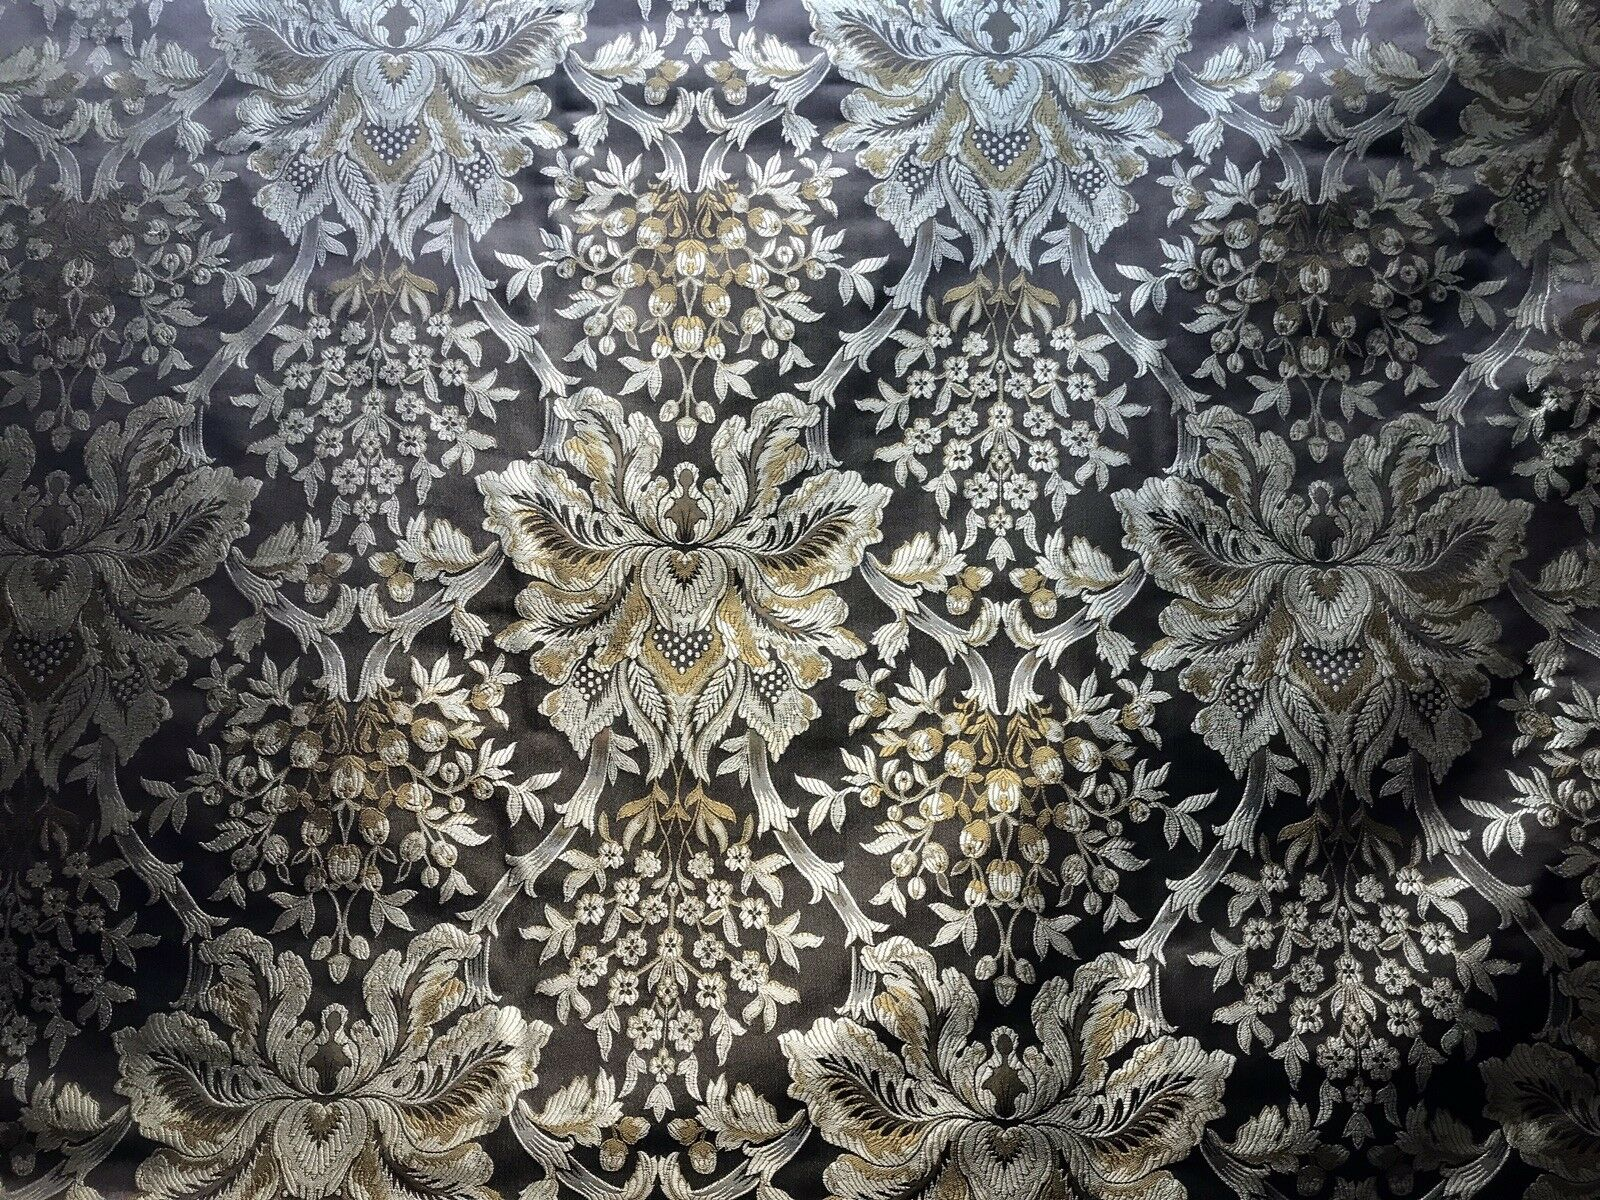 NEW 100% Silk Taffeta Dupioni Floral Brocade Damask Fabric -Brown